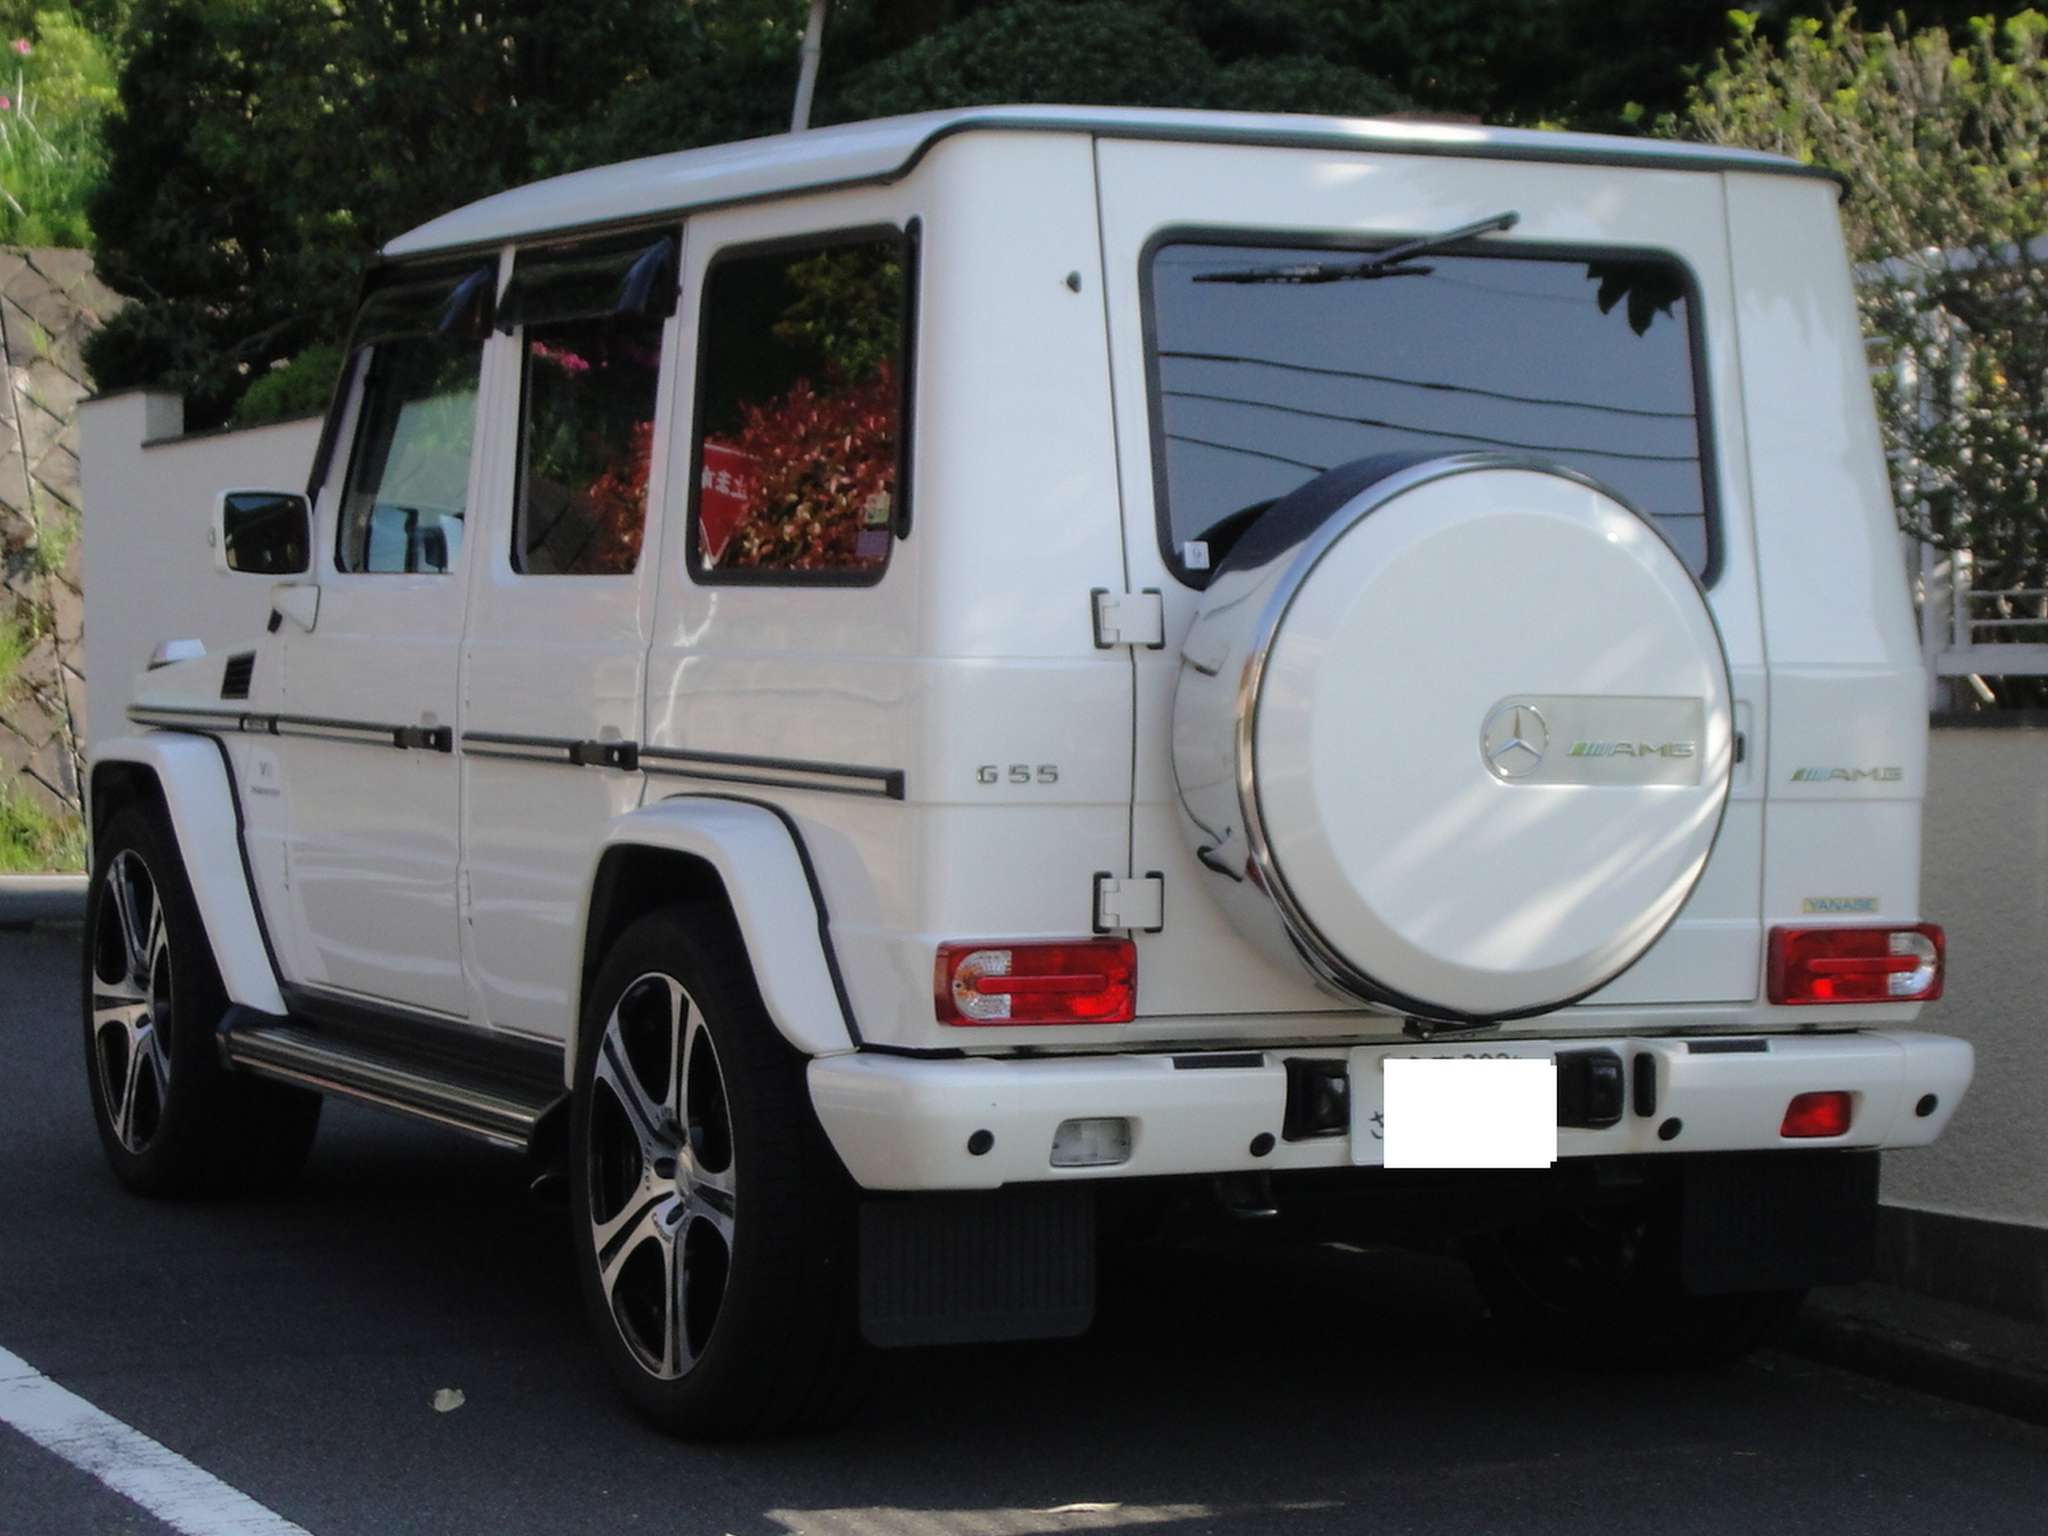 6545459313 together with Wallpaper 14 also 2006 Mercedes Benz E Class Paris To Beijing 5 Lanzhou To Beijing From Wuhai To Hohhot Mongolian Steppe And Desert Landscapes 7 1280x960 additionally 2015 Mercedes Benz Gl550 Review 28246 moreover File Mercedes Benz G55 AMG Tx Re. on mercedes benz g class